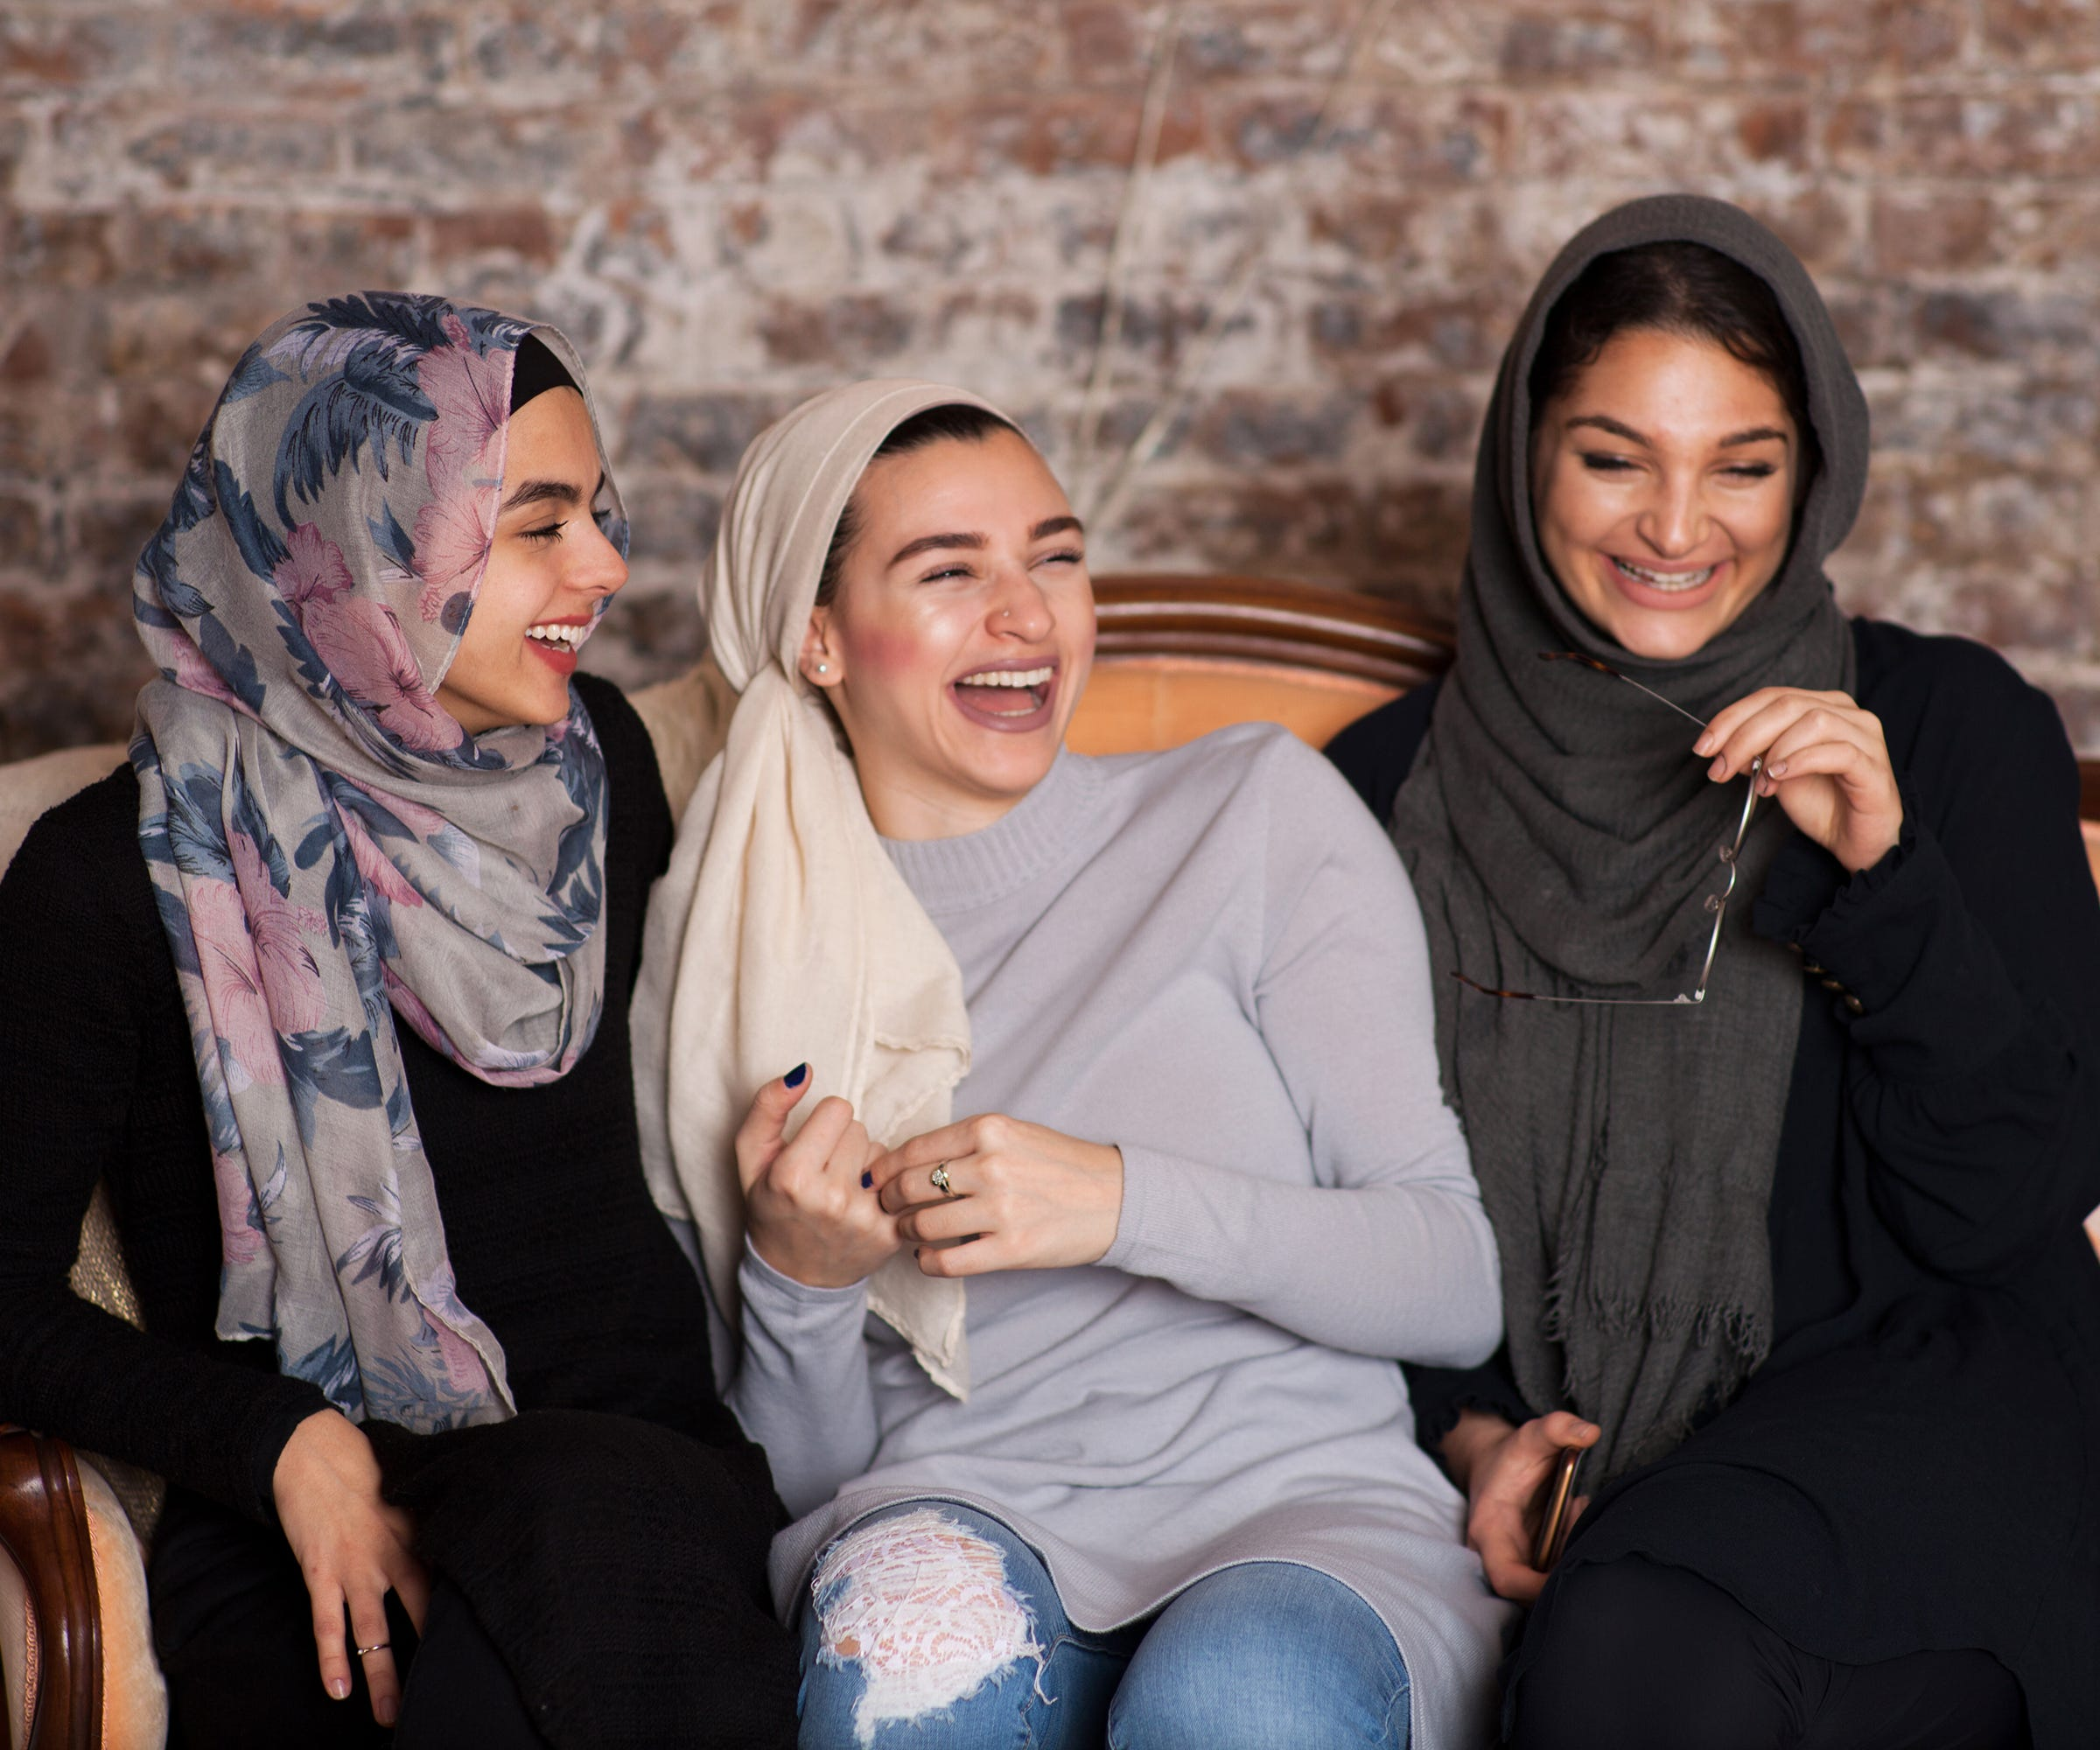 buxton muslim single women We've been helping families get stuff done for over 85 years from favourite names to wilko branded products that you won't find anywhere else, you'll find the things you need every day at the best possible prices.